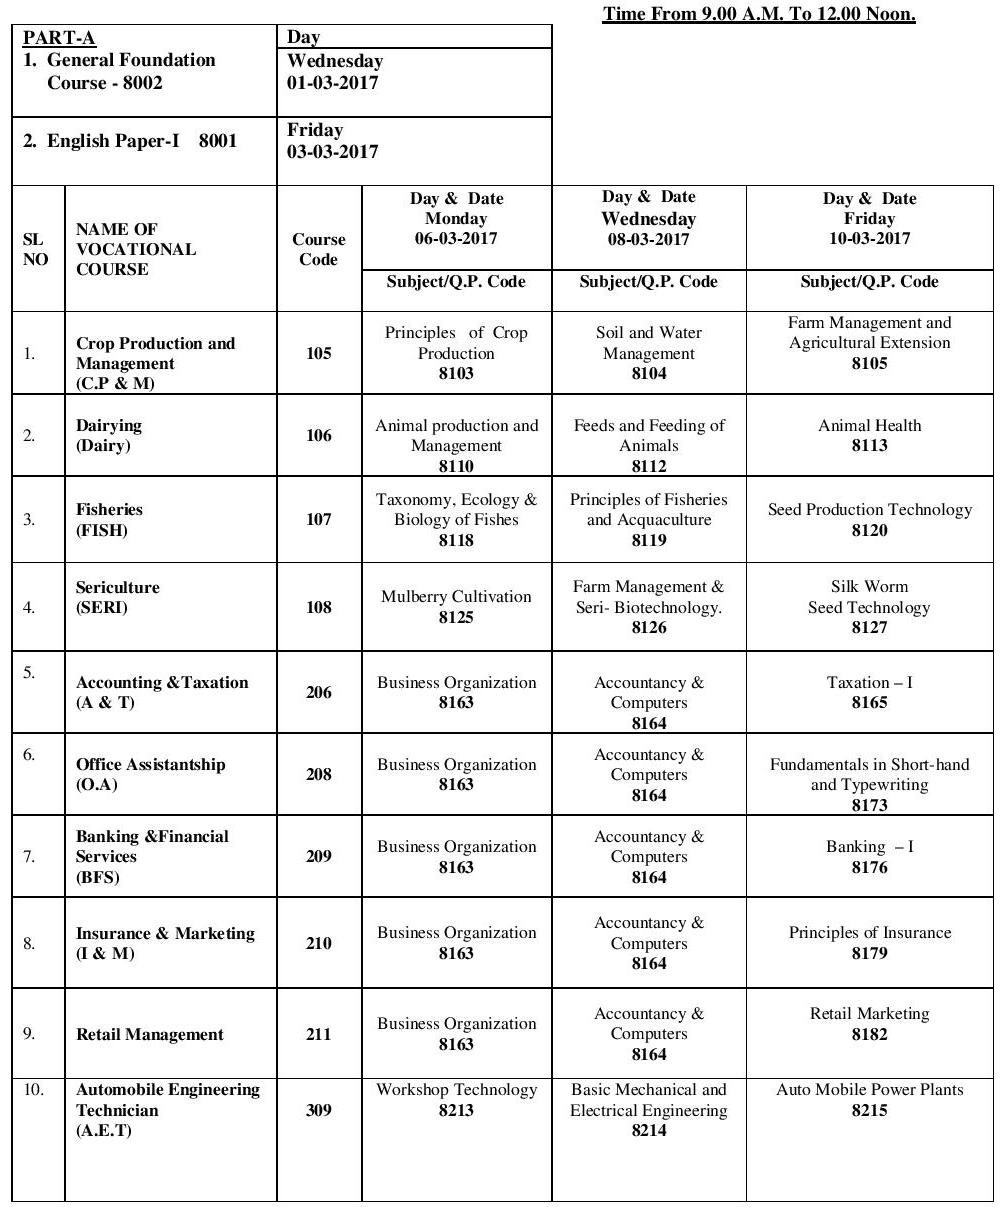 Worksheets 12 Time Table andhra pradesh board time table 2017 for class 10 12 vocational first year table